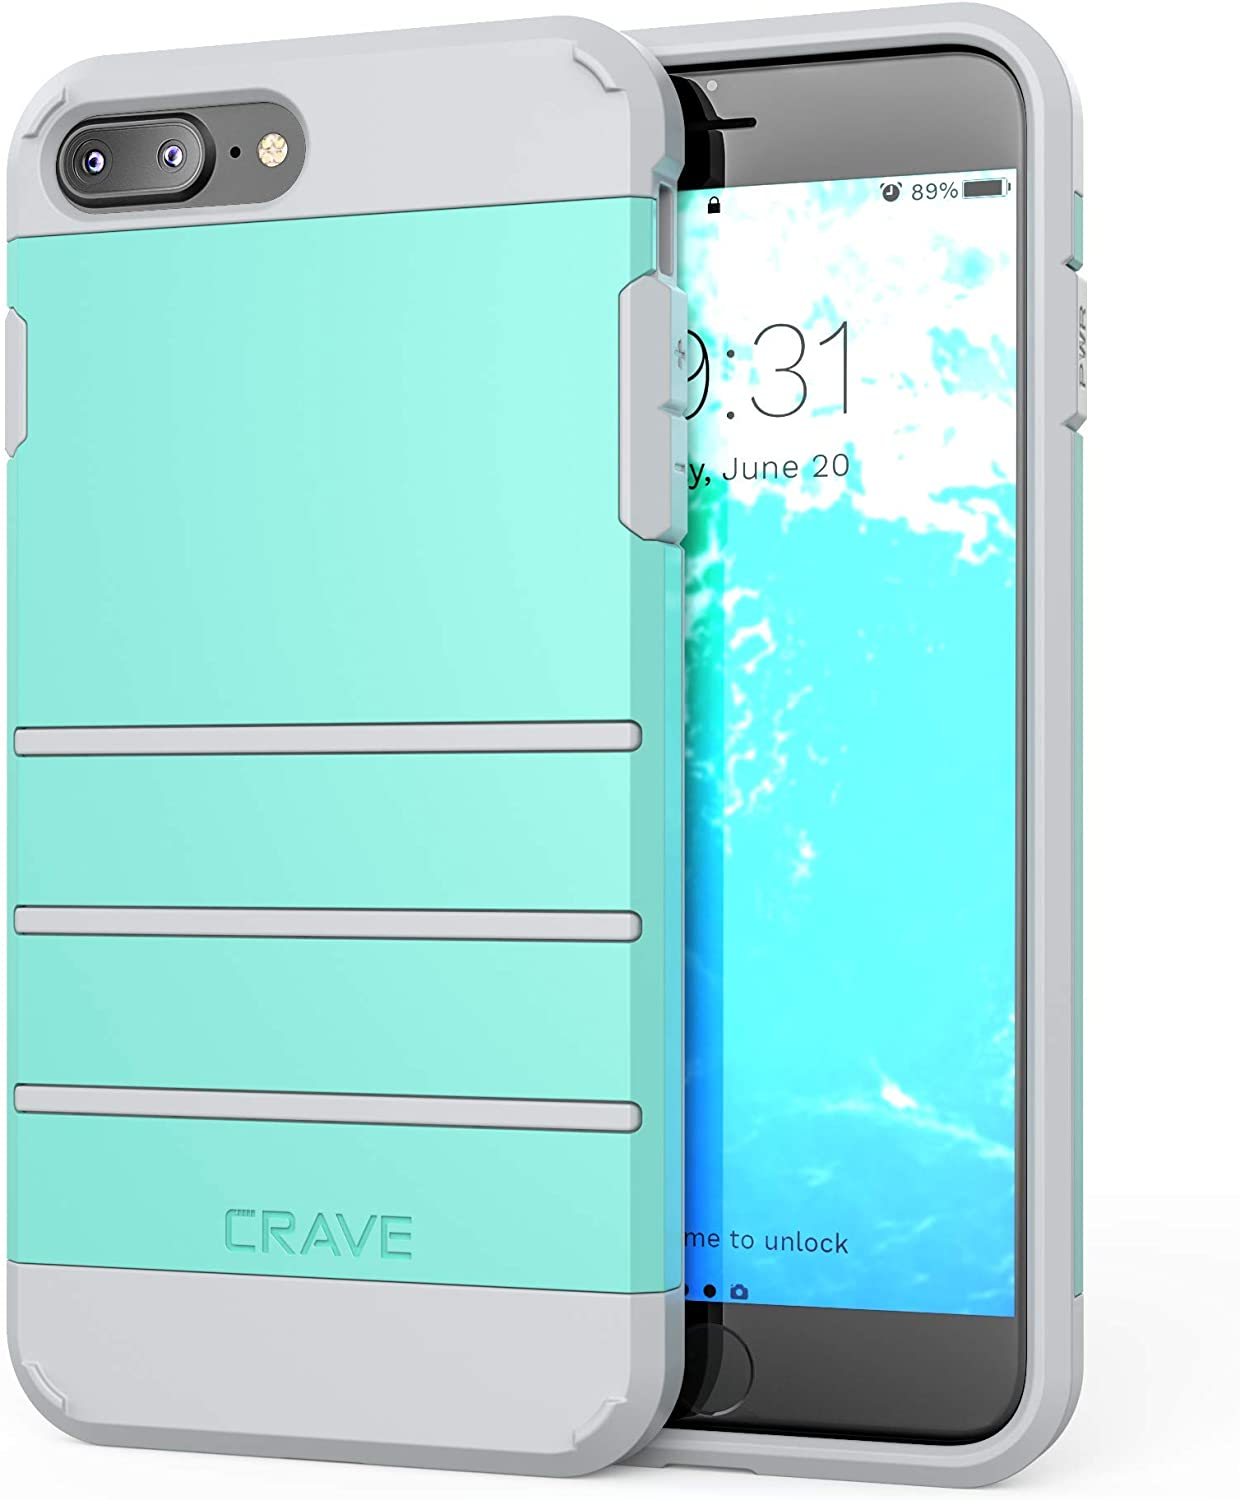 Crave iPhone 8 Plus Case, iPhone 7 Plus Case, Strong Guard Protection Series Case for Apple iPhone 8/7 Plus (5.5 Inch) - Mint/Grey